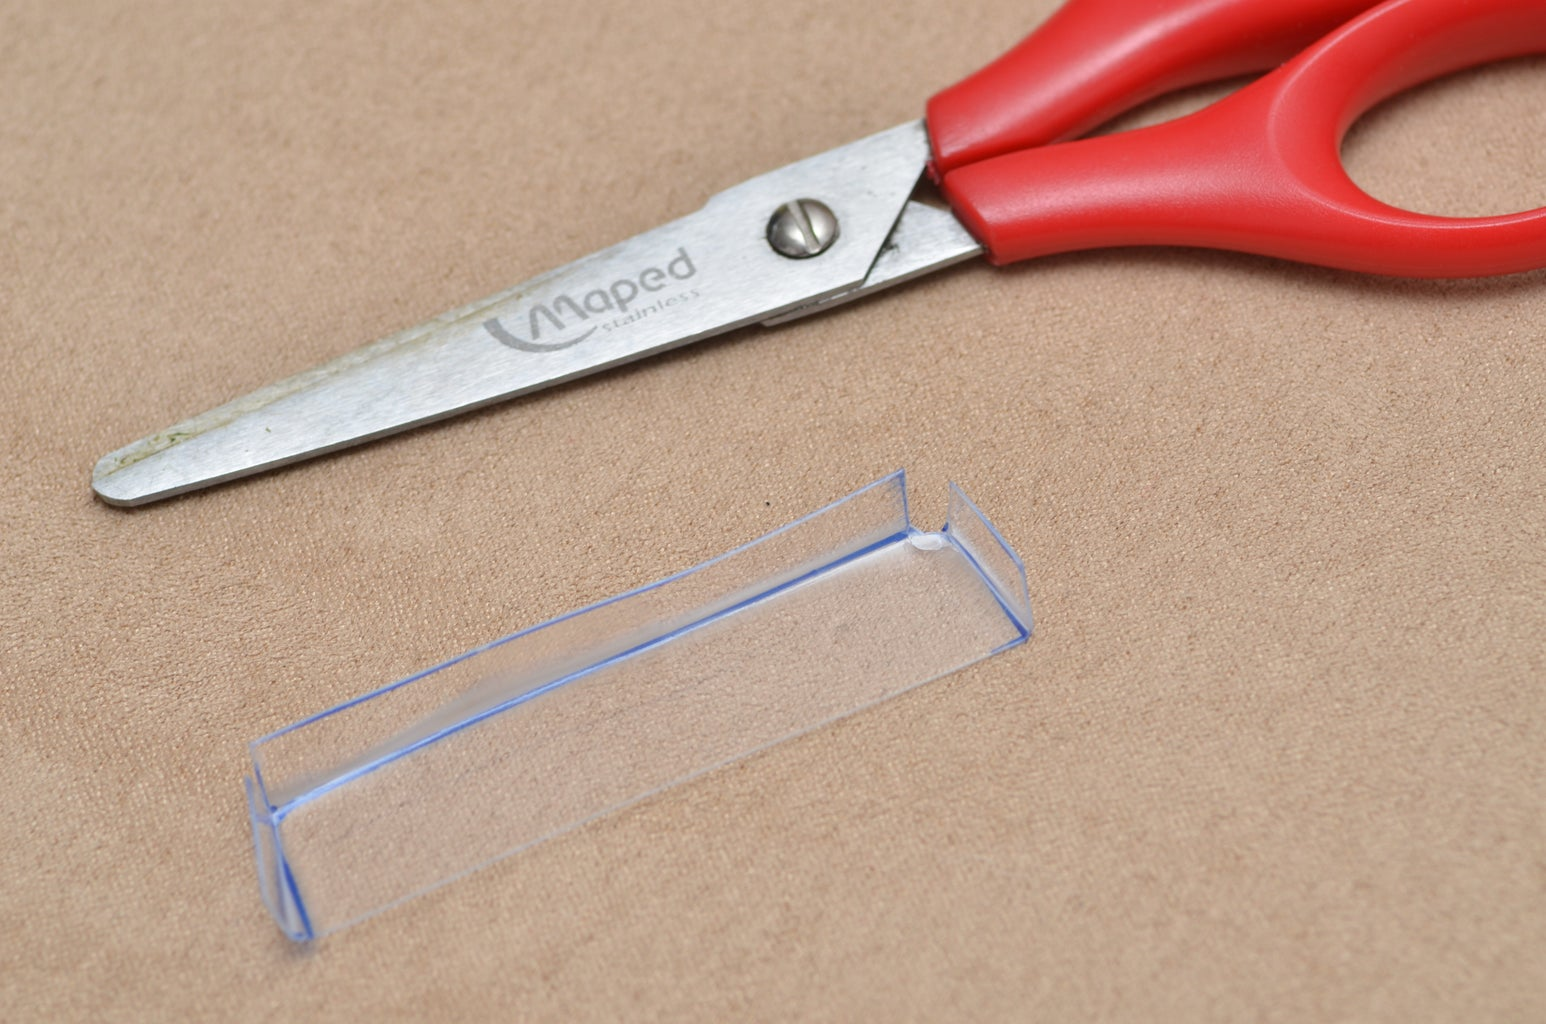 Measure and Cut the Holder